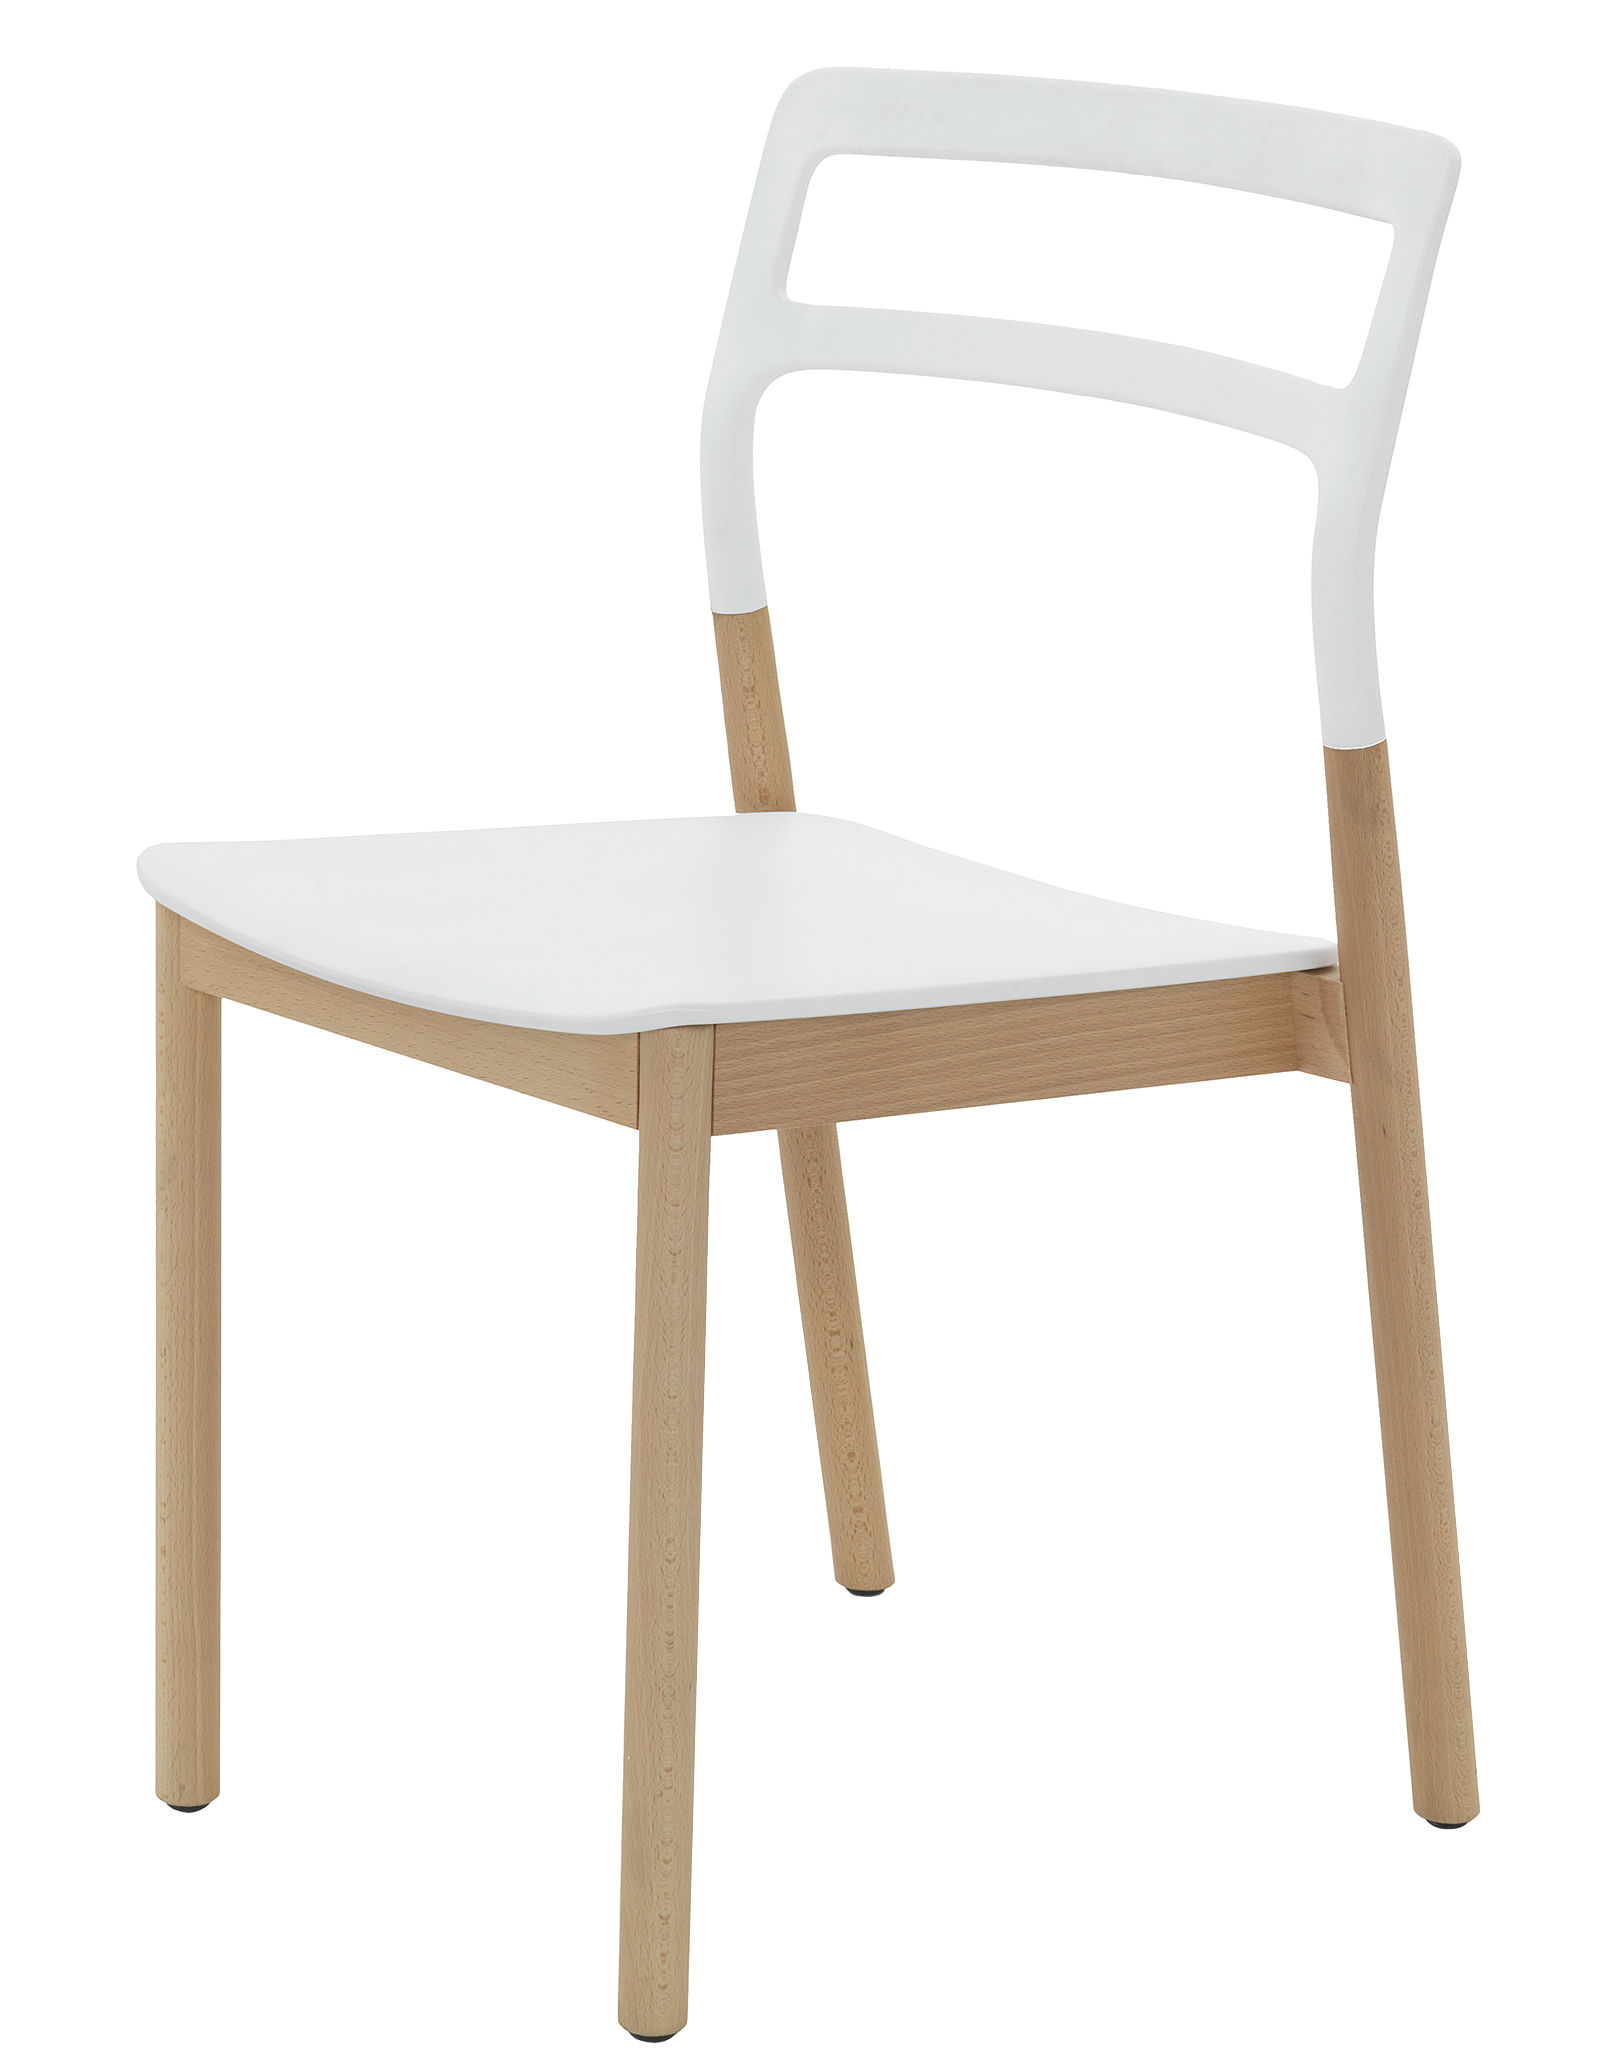 Furniture - Chairs - Florinda Stacking chair - Wood & plastic by De Padova - White - Natural beech, Plastic material